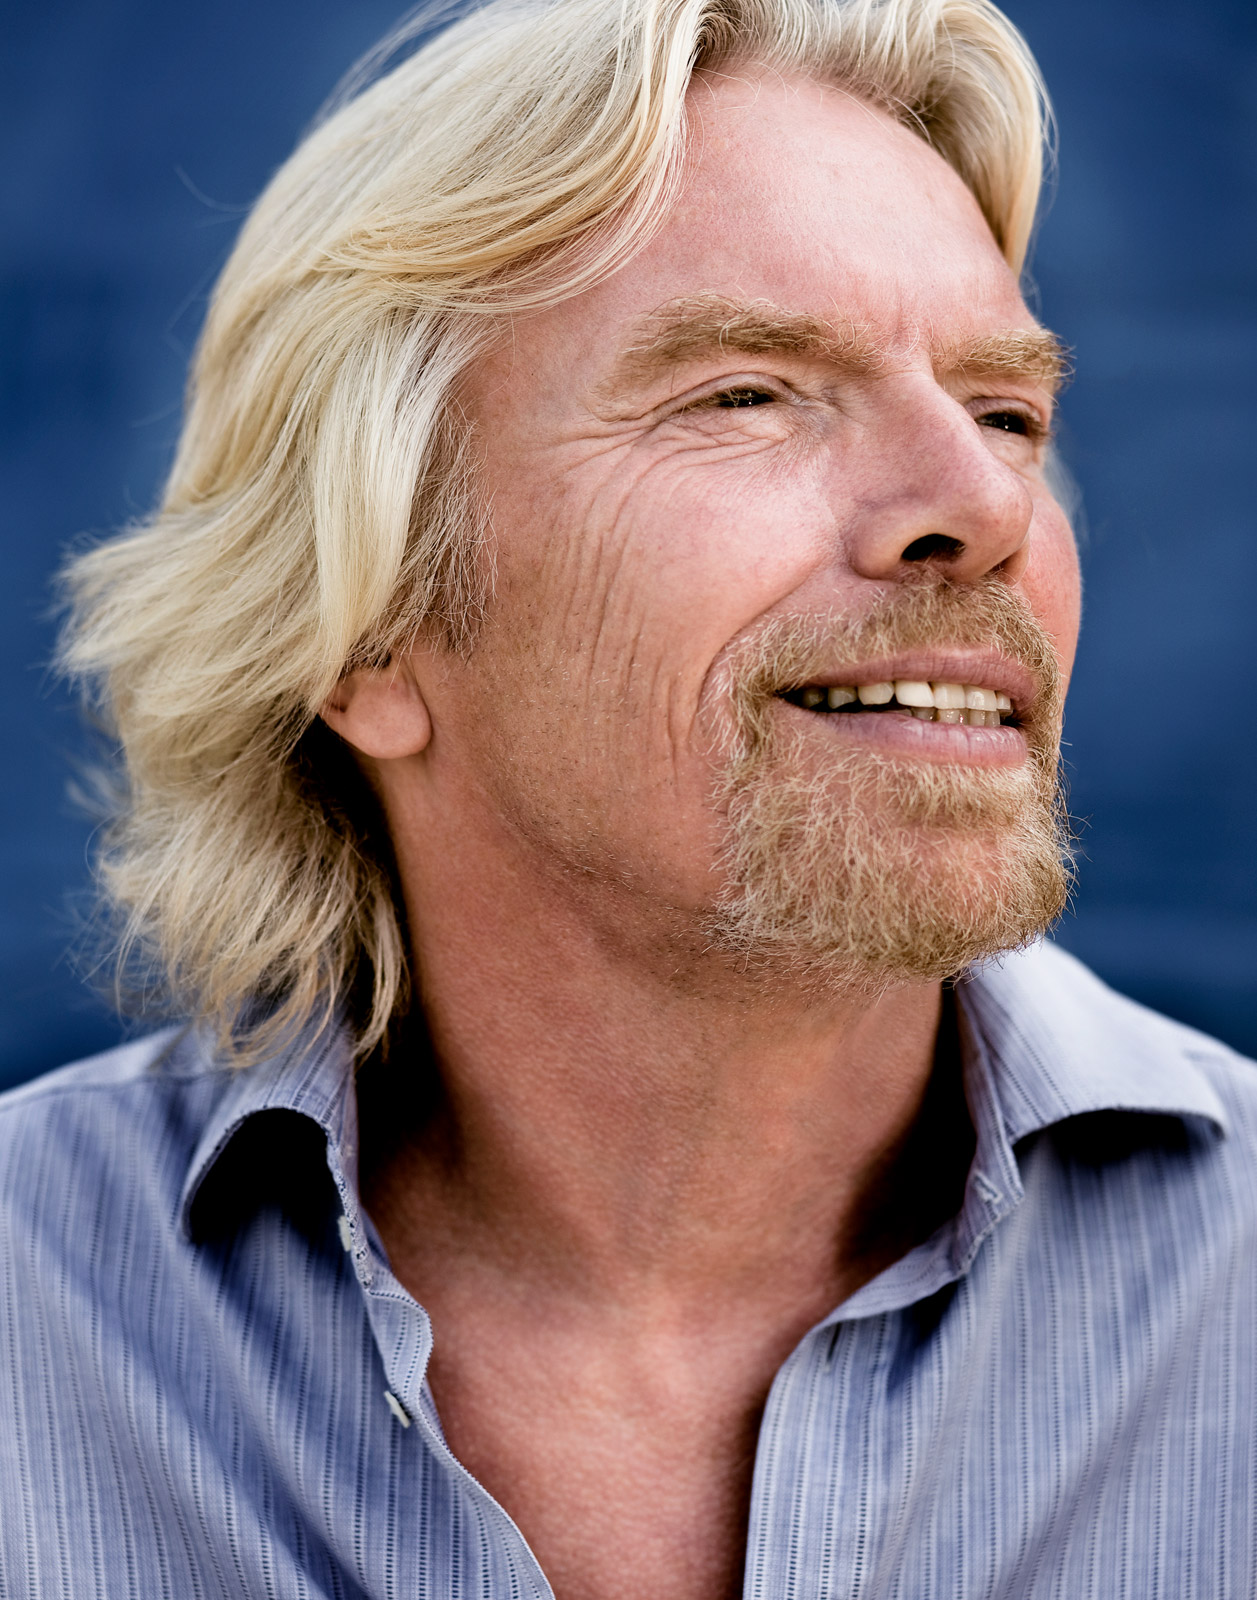 richard_branson-2166_updated